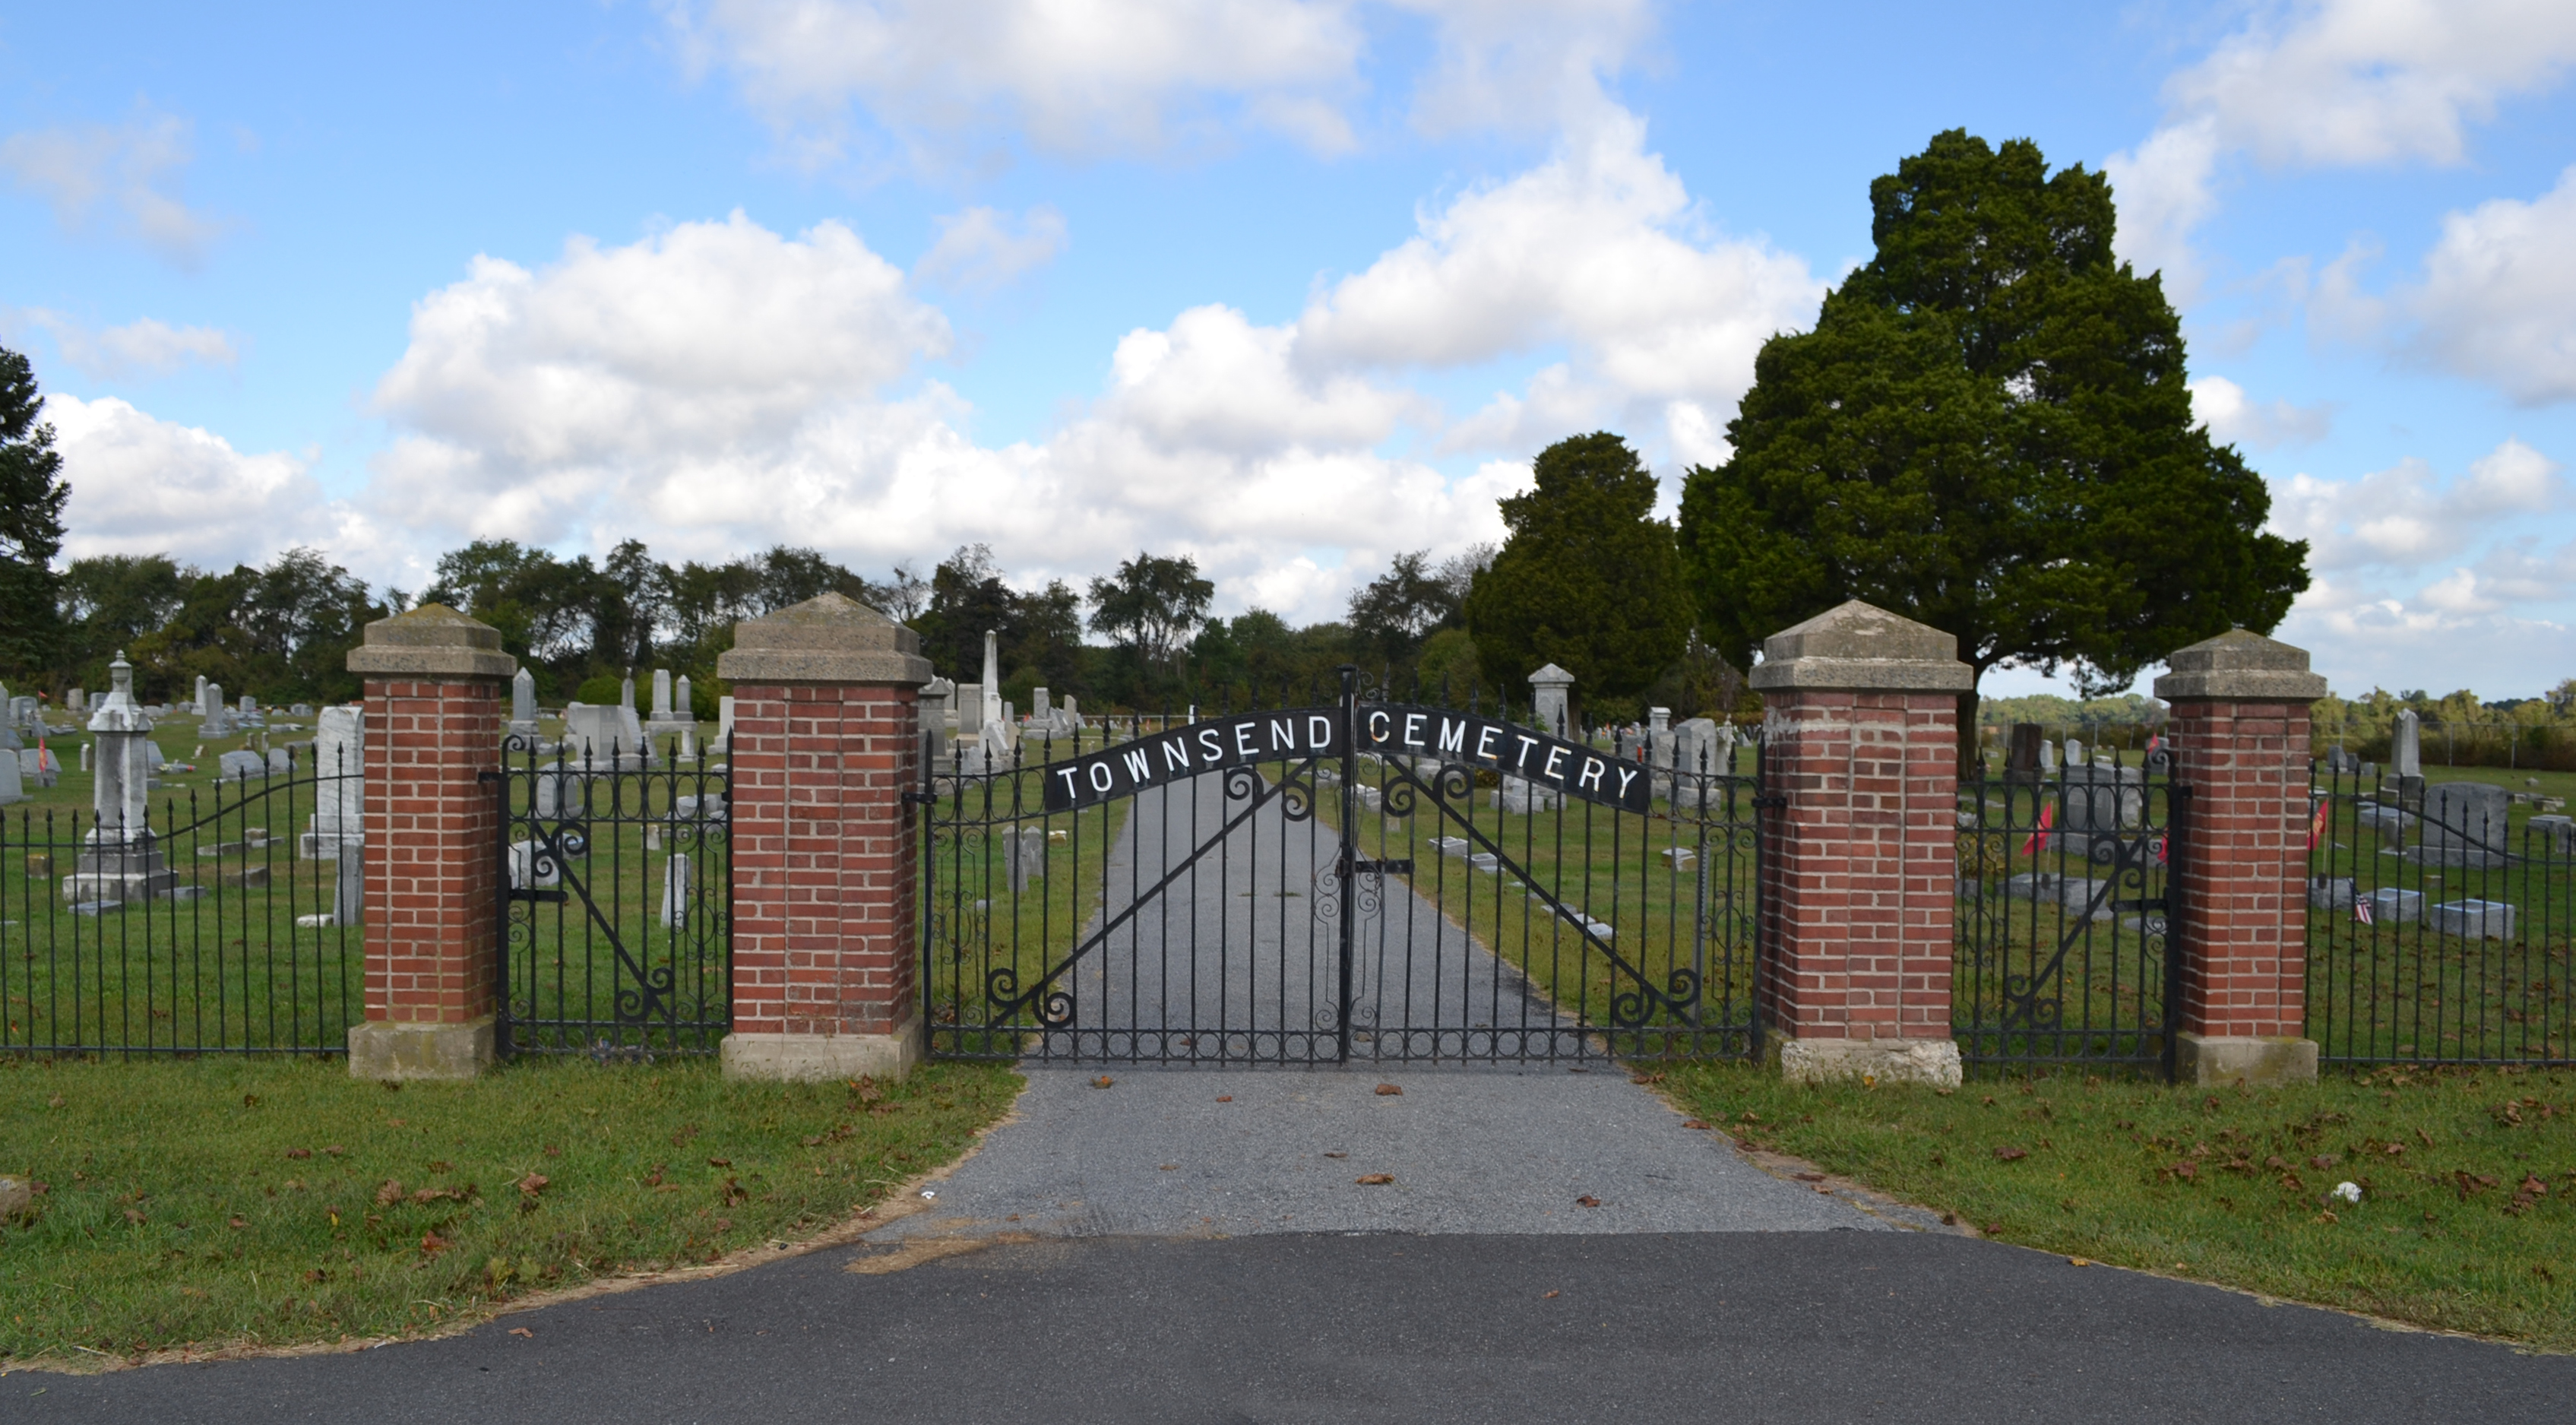 Townsend Cemetery